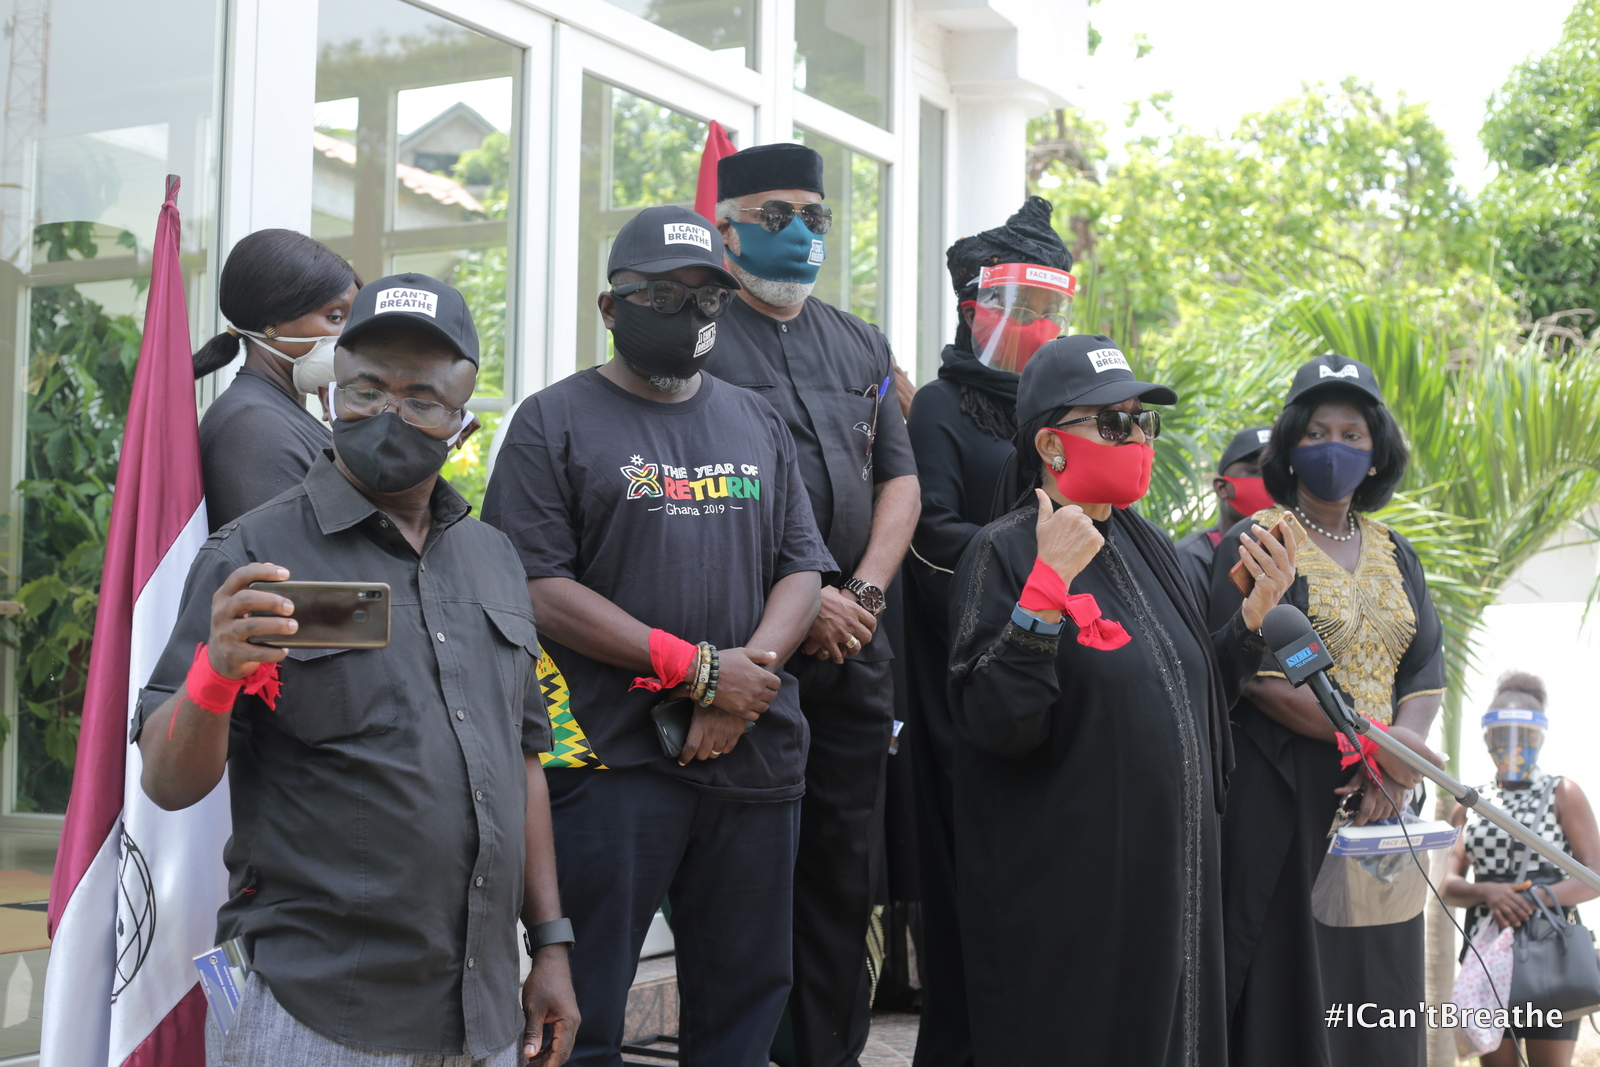 Ghana's President talks tough as protestors present petition for Justice for Floyd